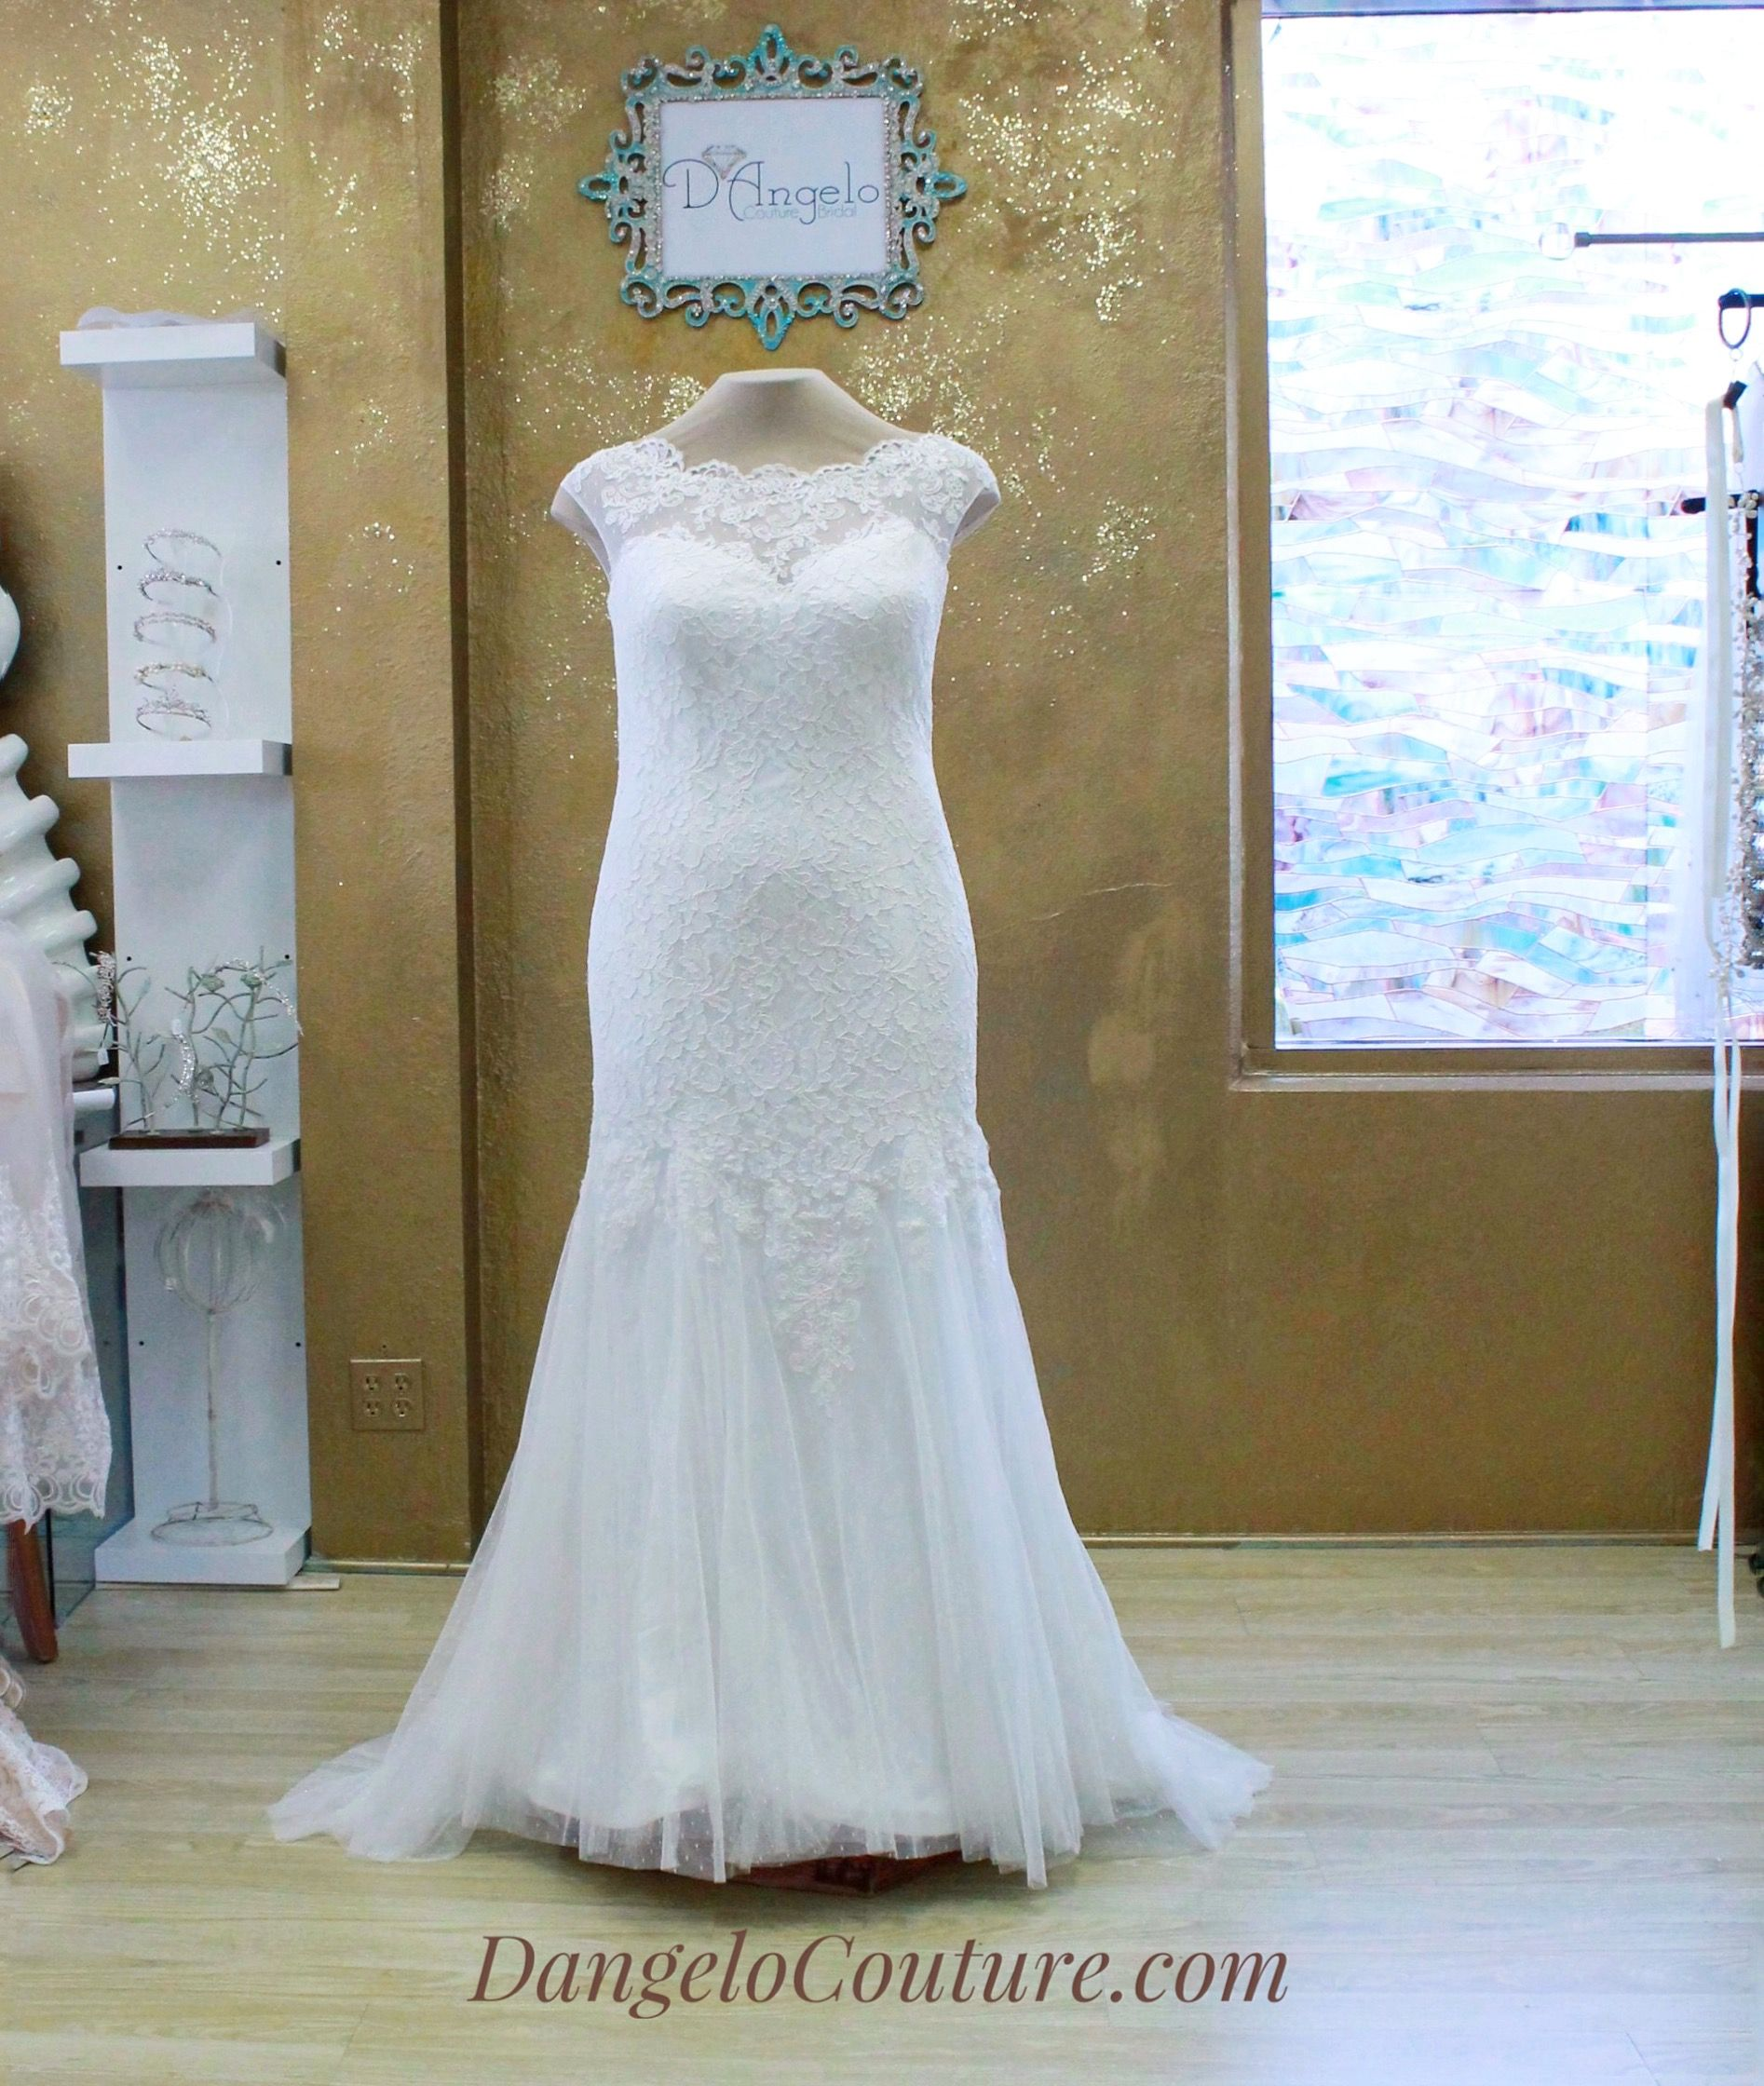 Luxury Wedding Dress In San Diego Vignette - All Wedding Dresses ...